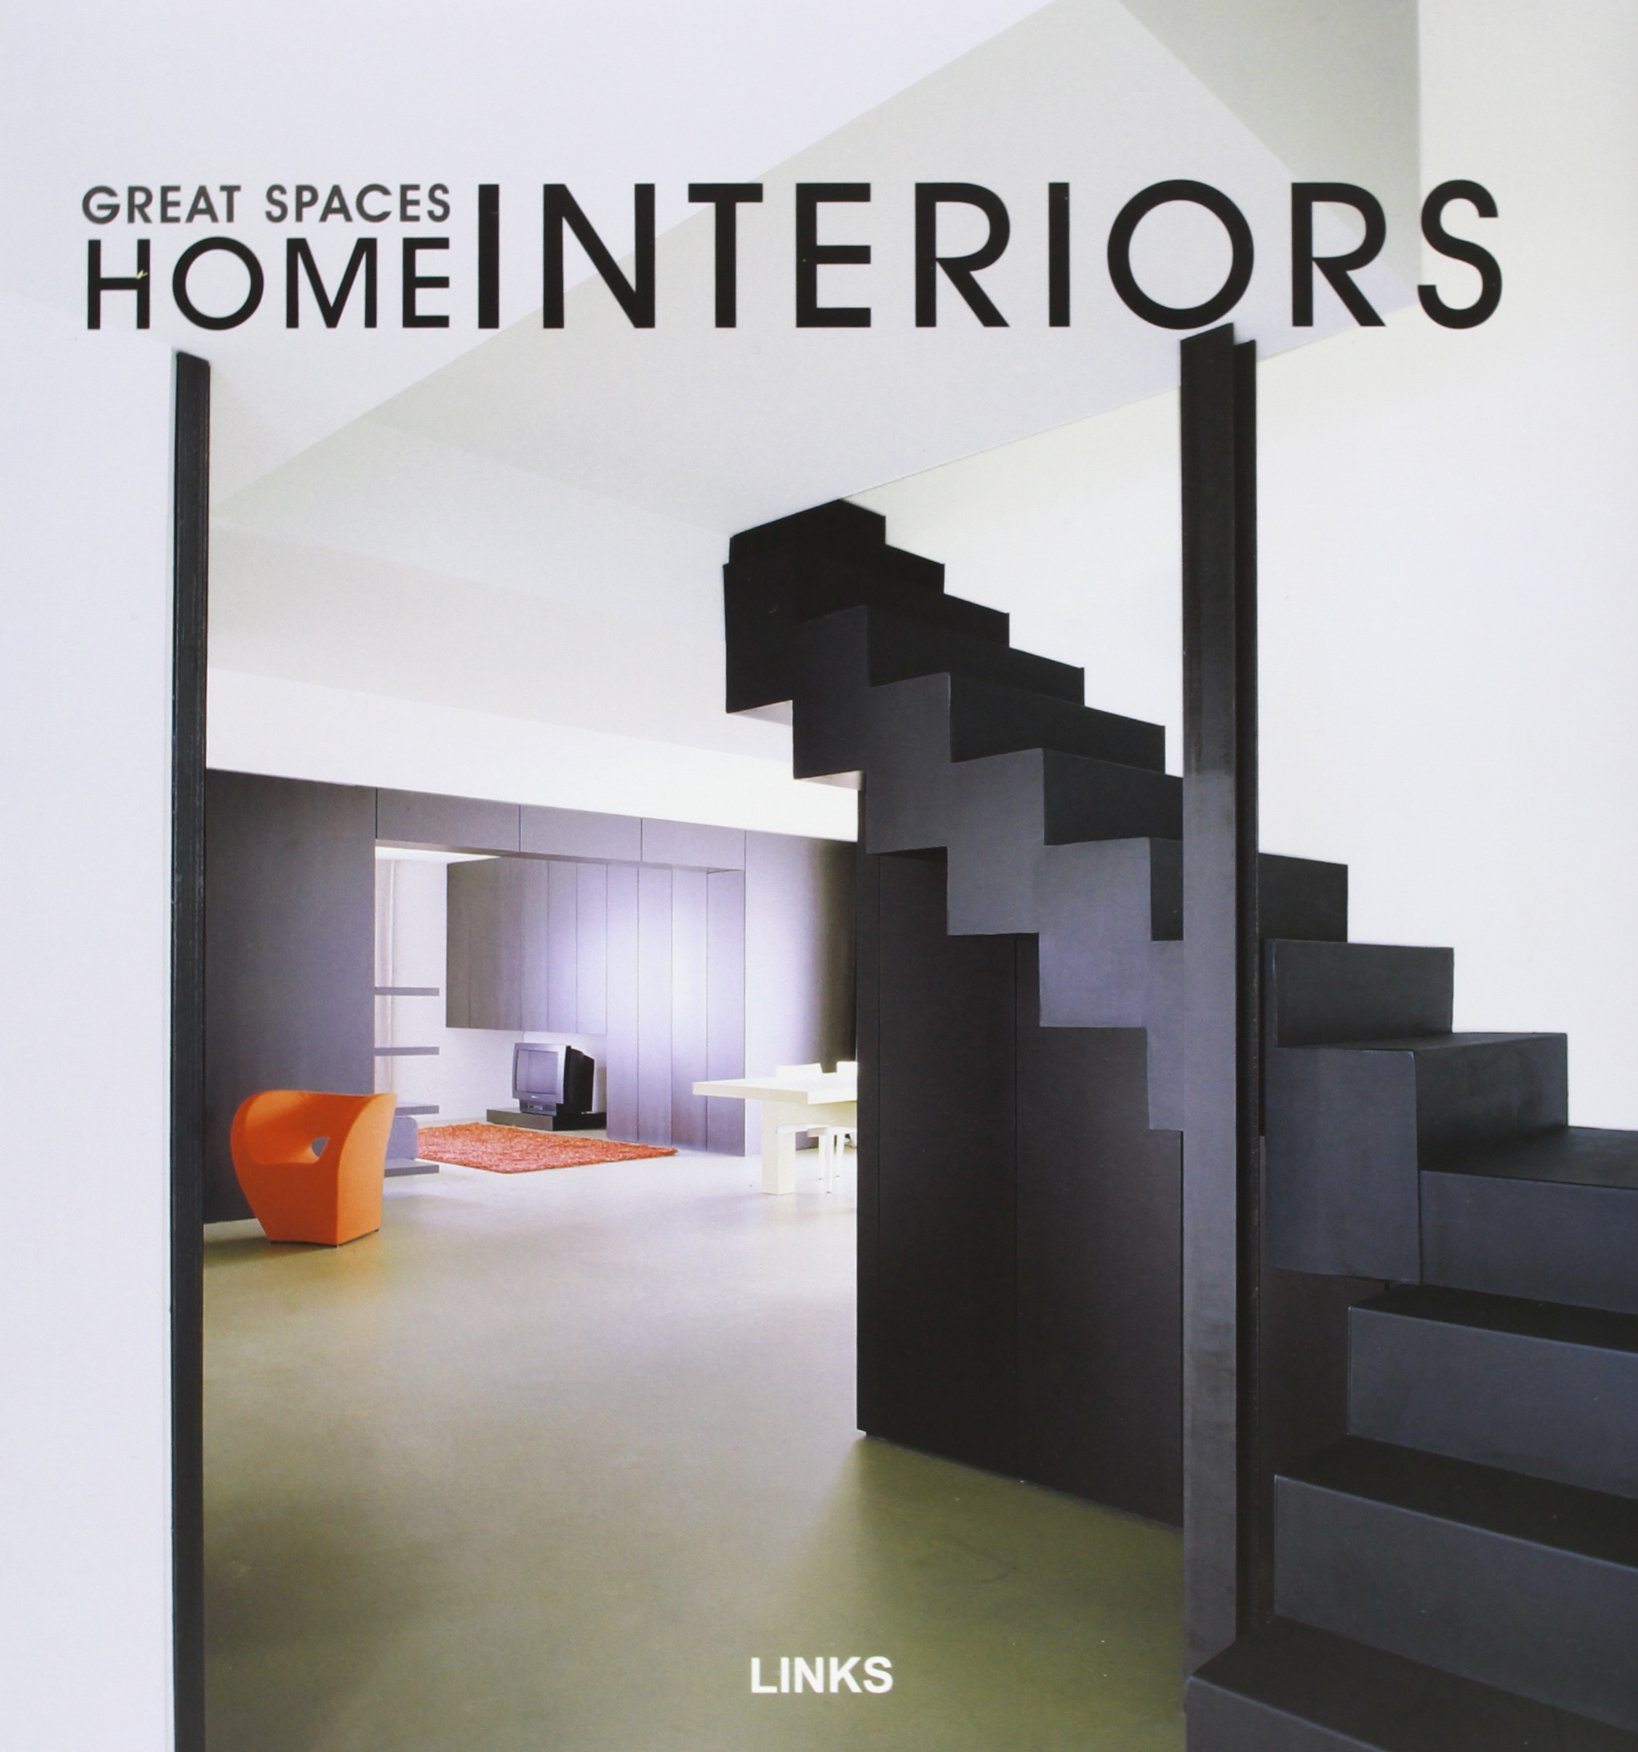 Great spaces home interiors jacobo krauel 9788496263536 books amazon ca